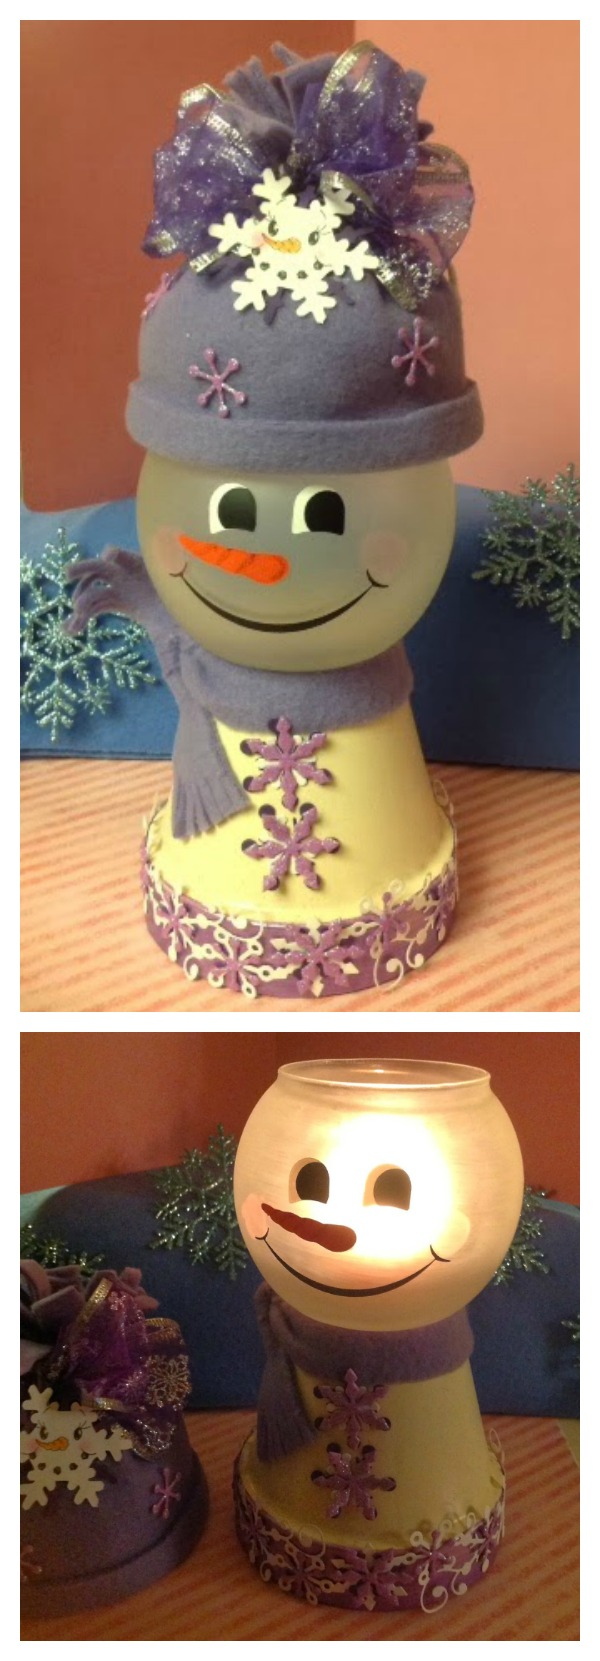 diy craft ideas for christmas 10 creative clay pot craft ideas page 2 of 2 6453